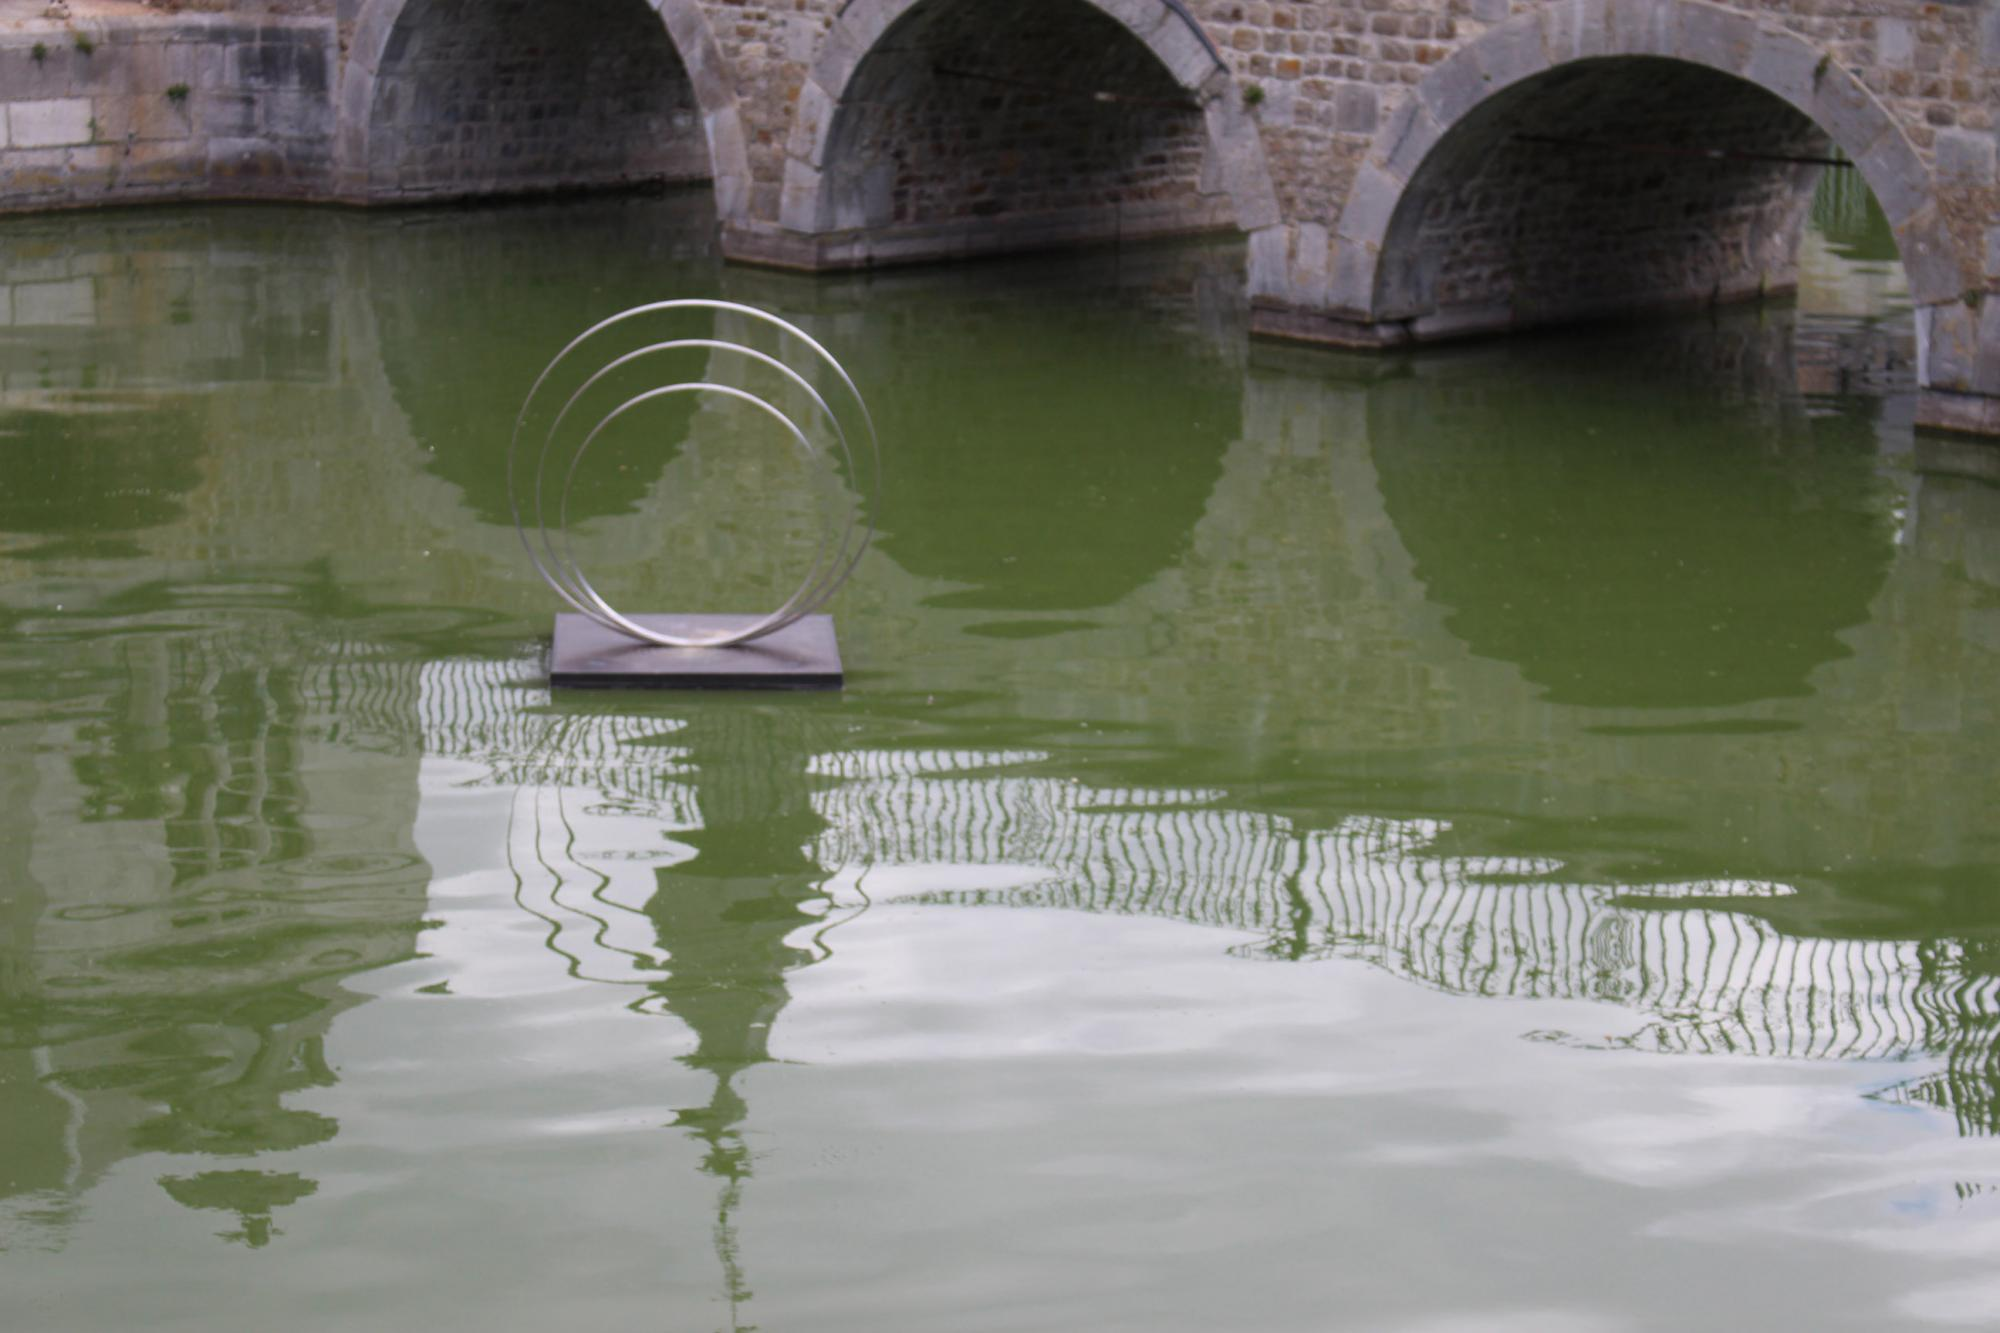 Five floating sculptures